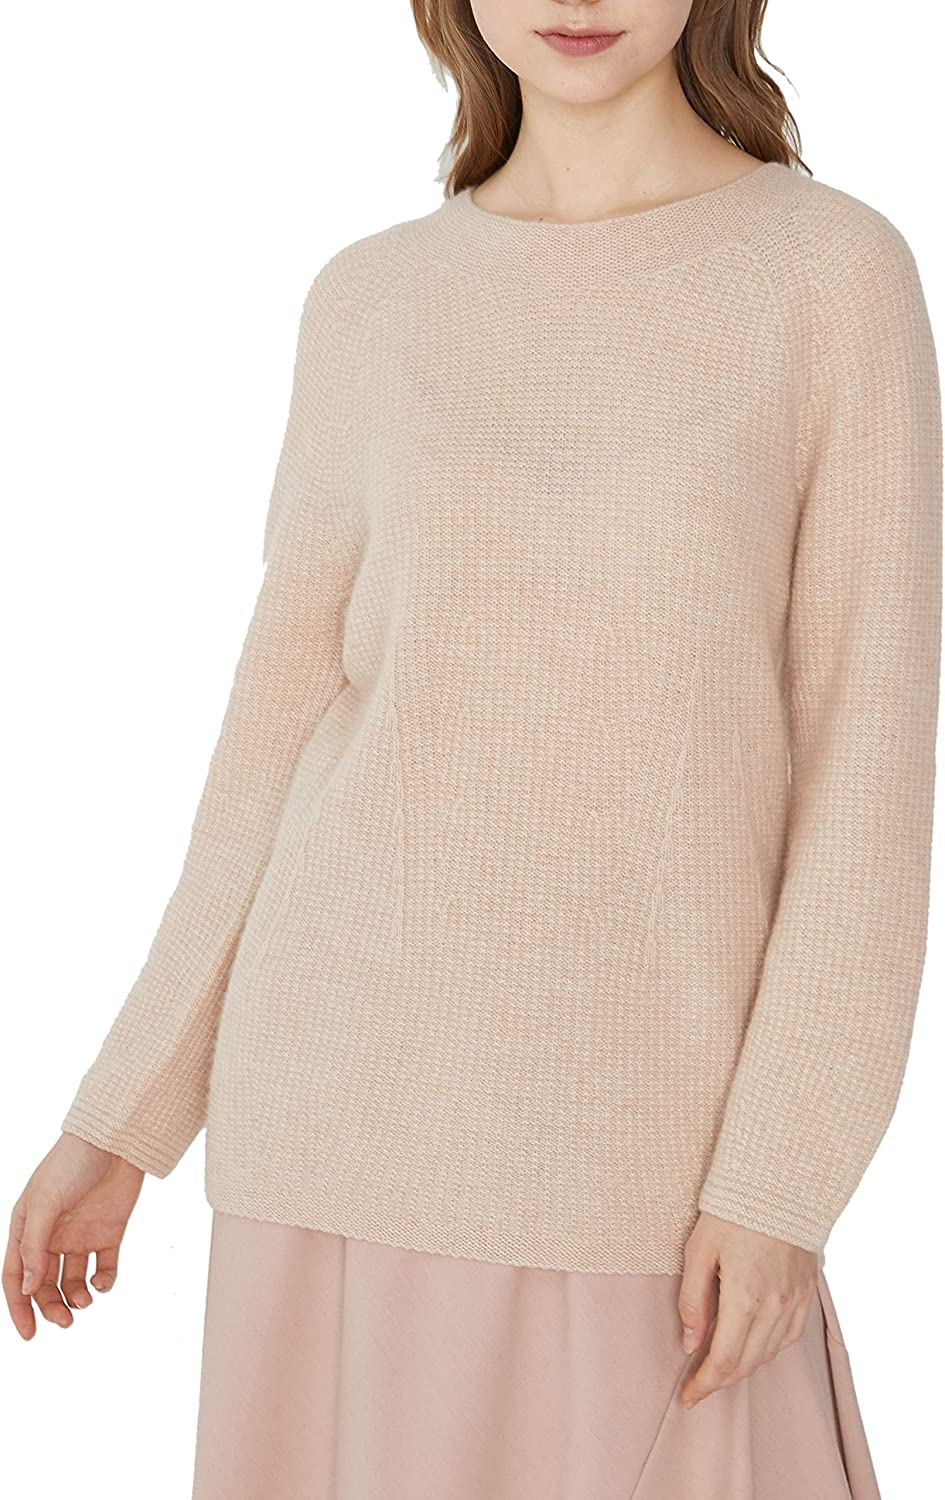 Women's Whole Garment Long Length 100% Cashmere Pullover Sweater Long Sleeve